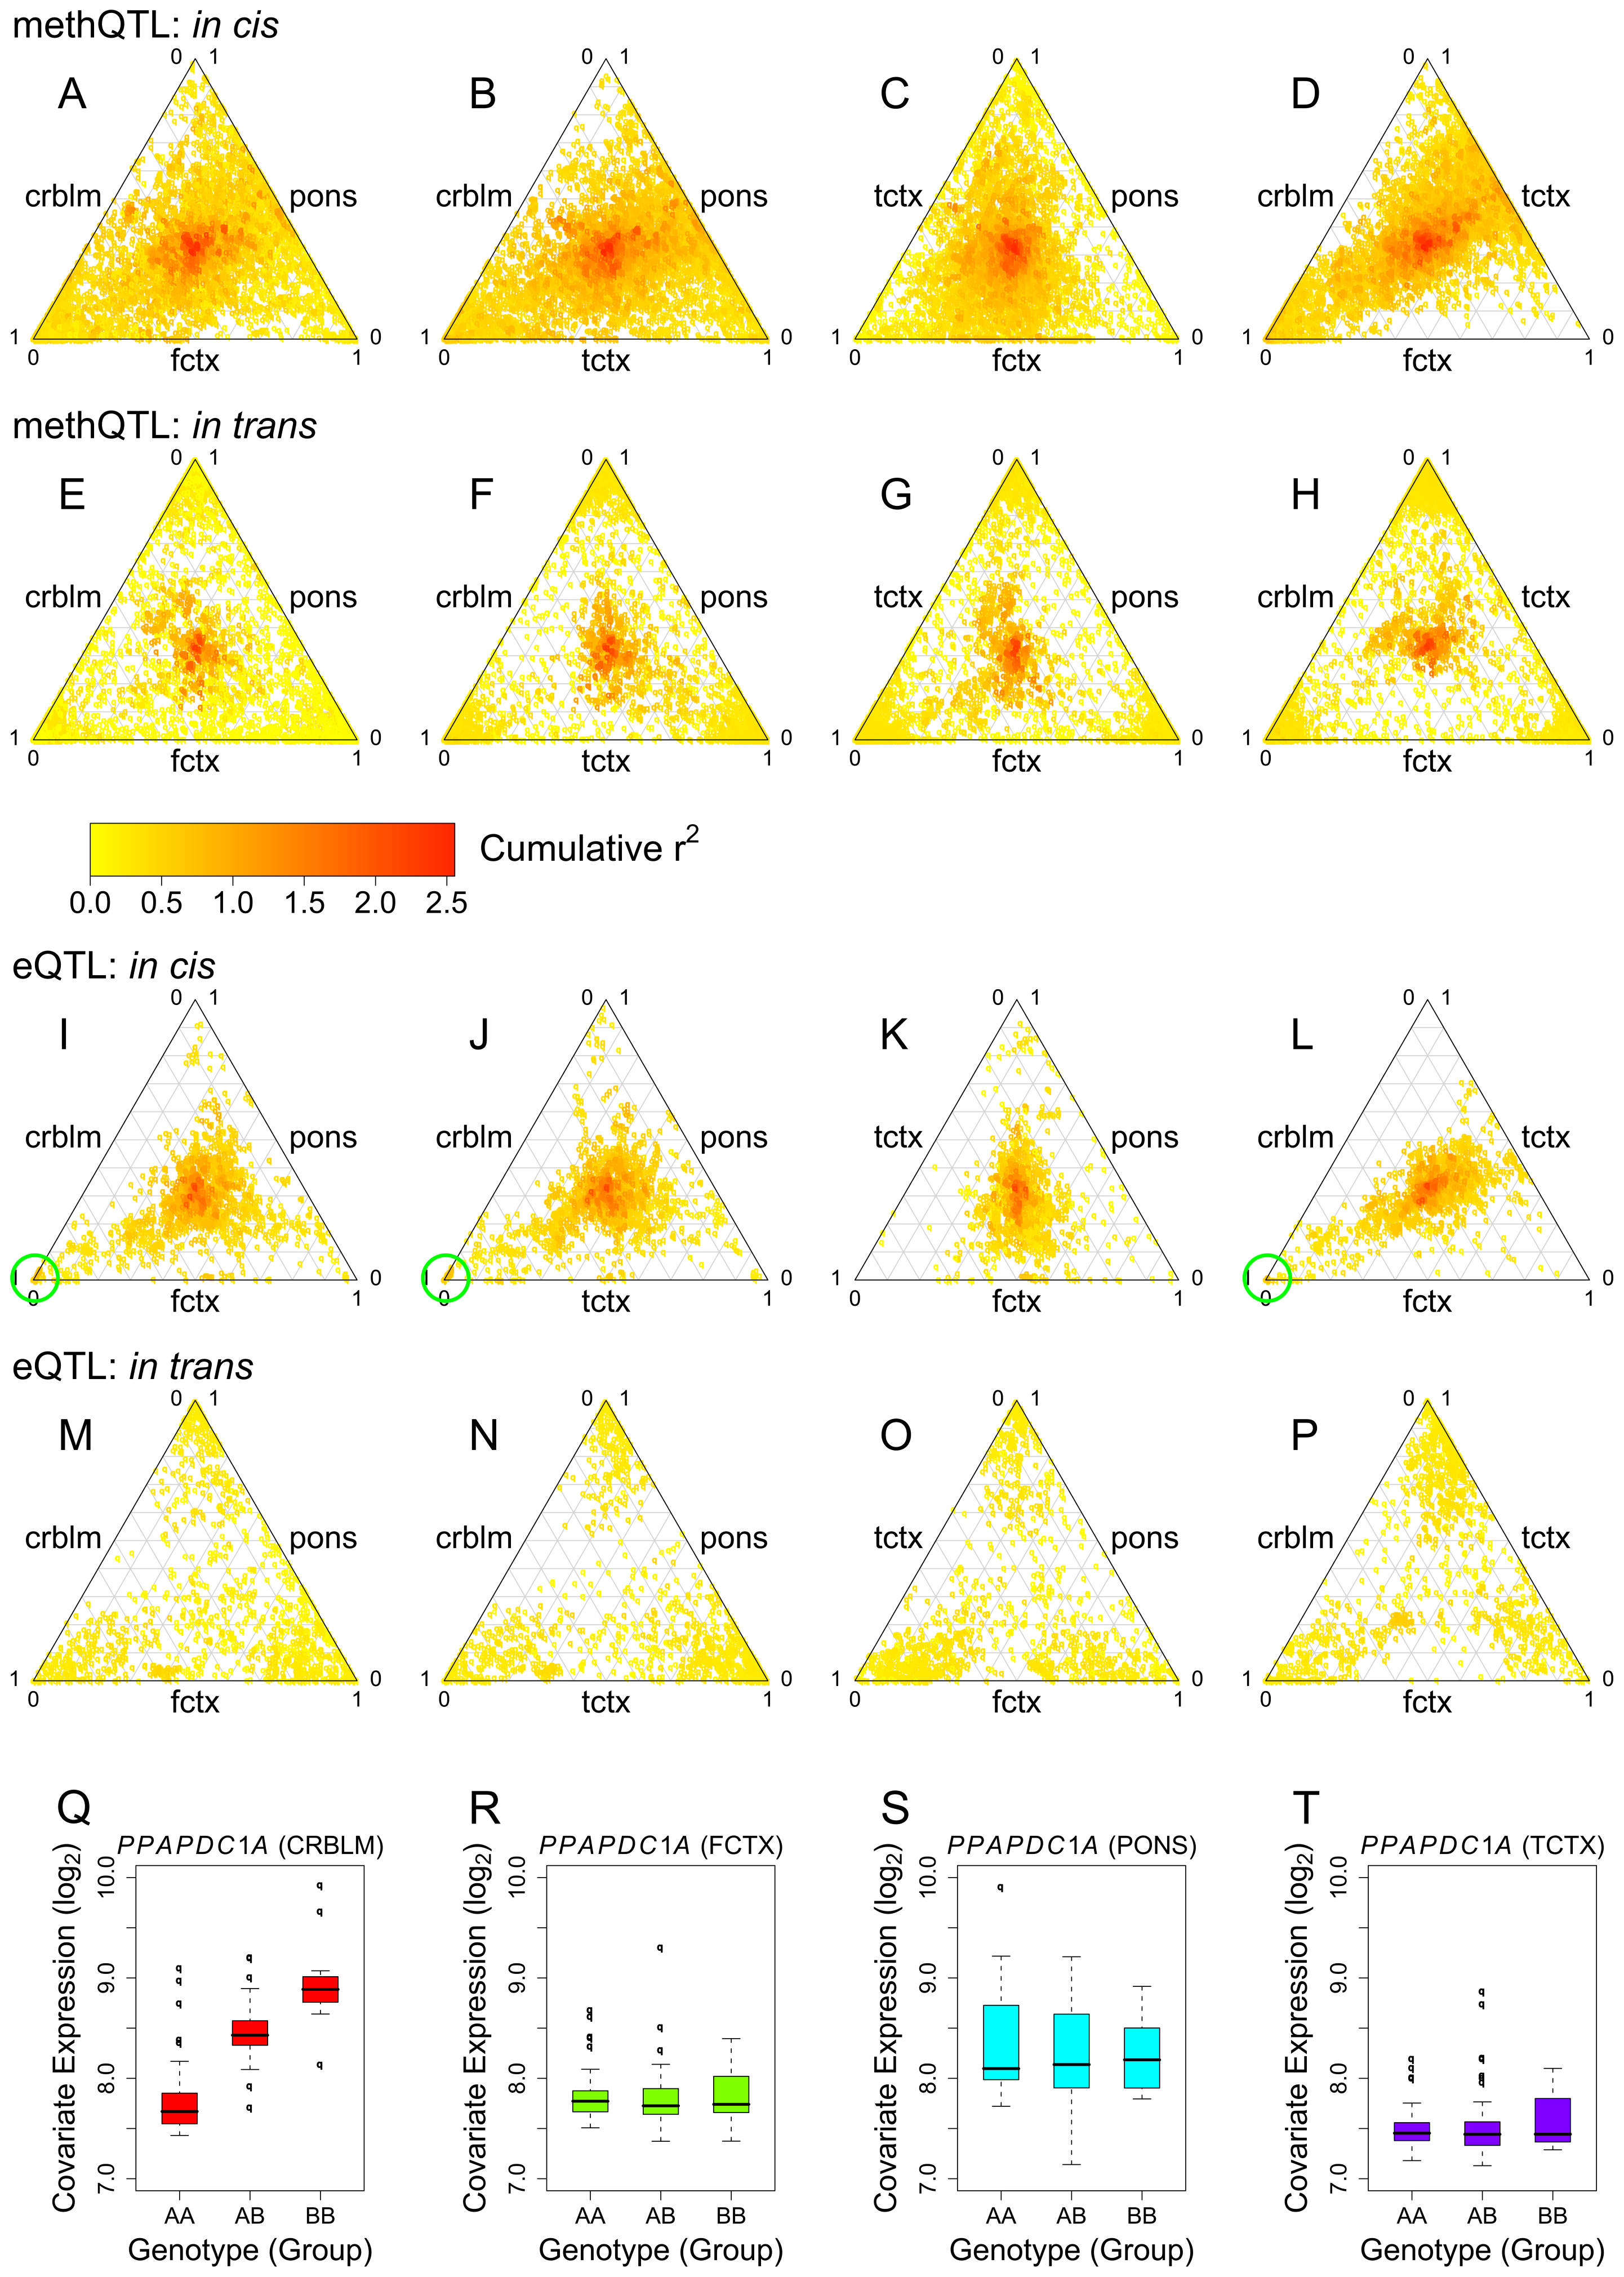 Comparison of QTLs for CpG methylation and mRNA expression across tissue regions.